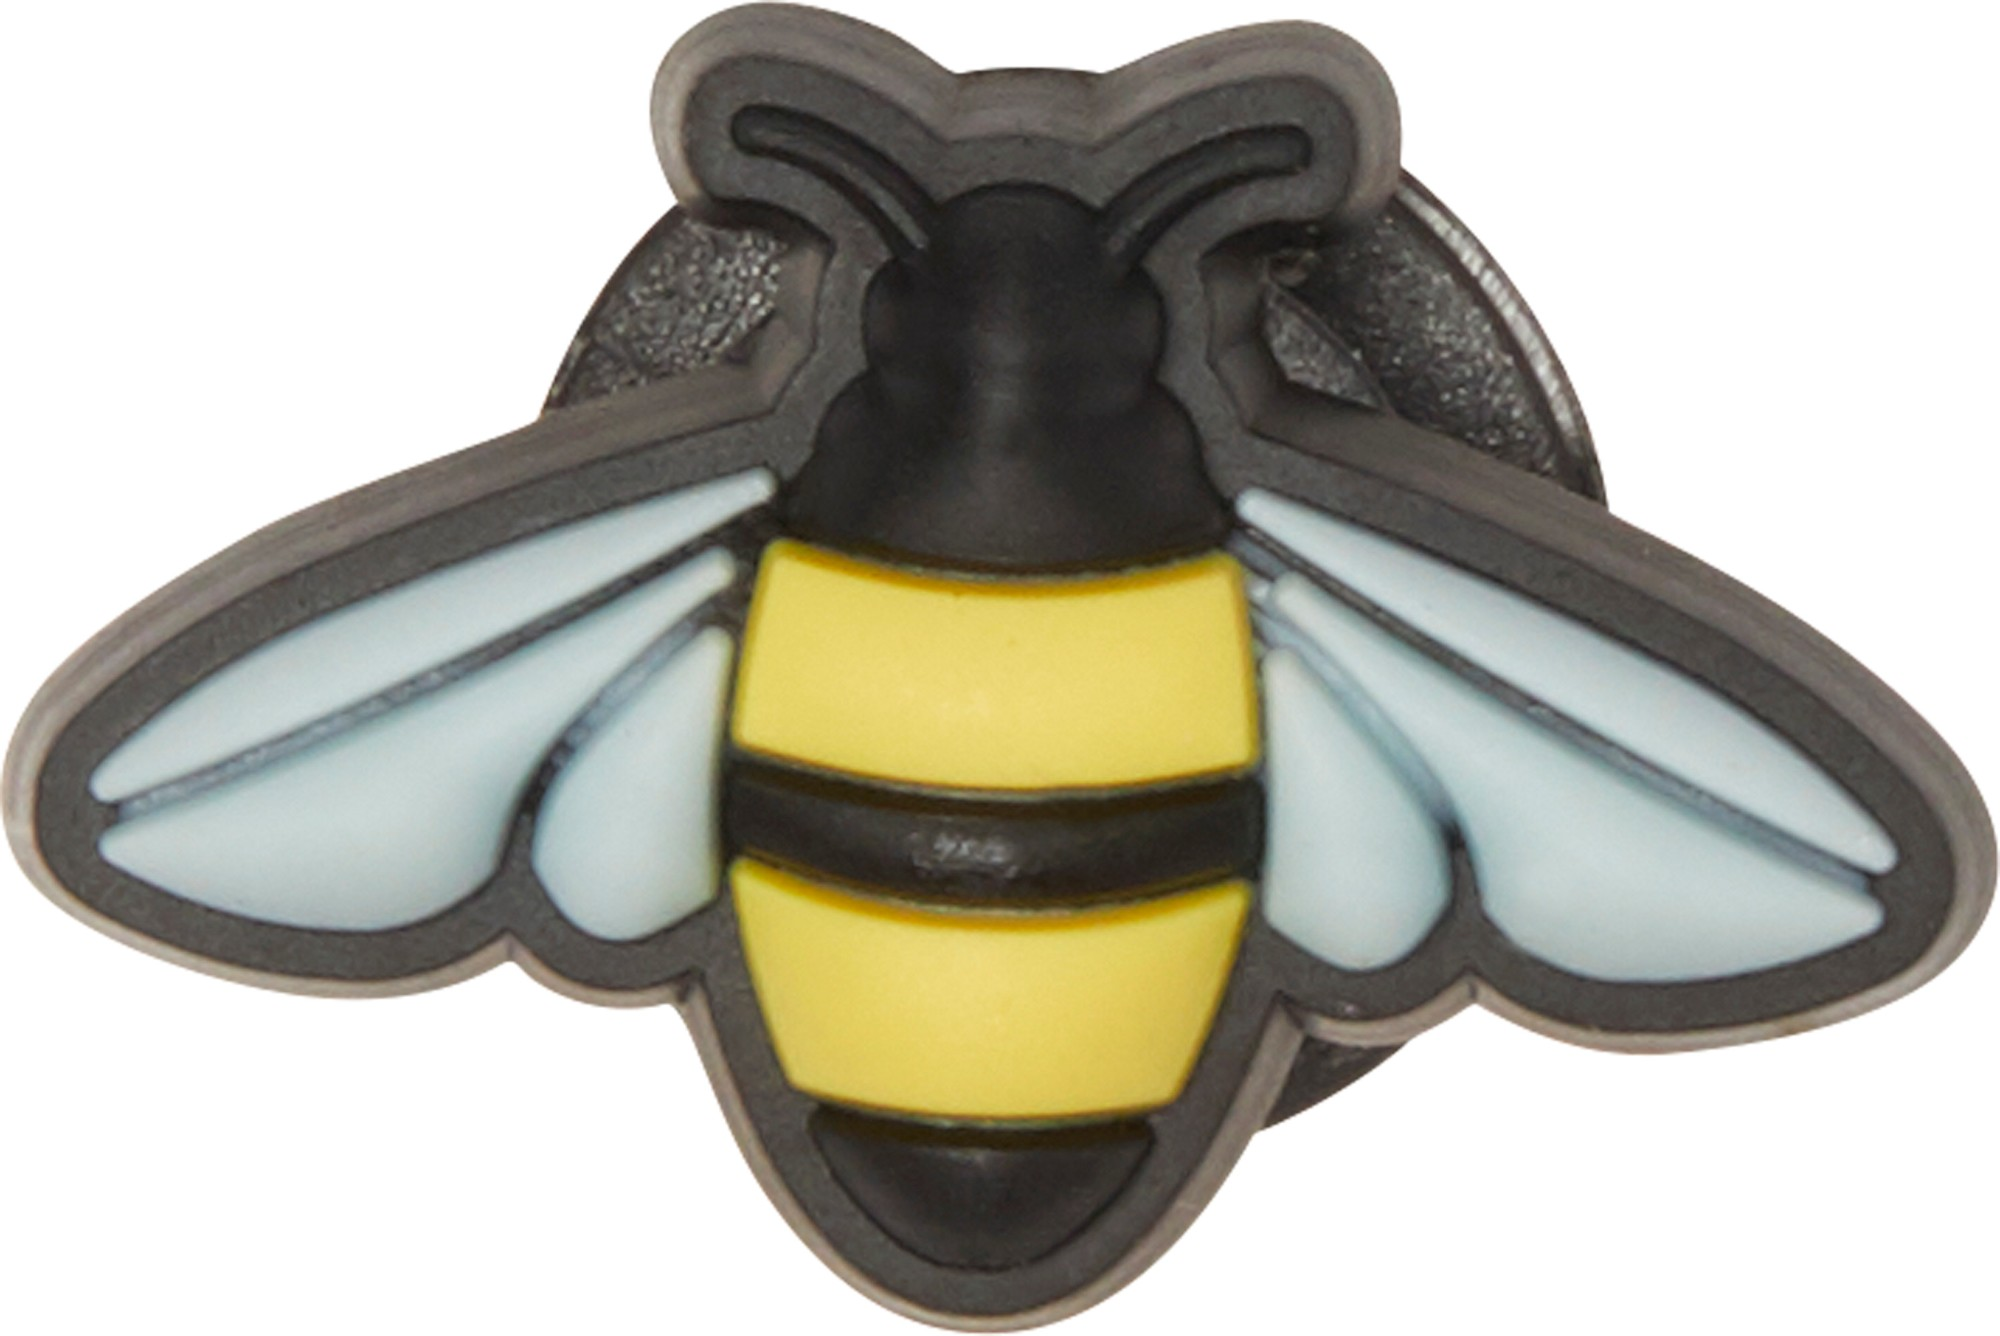 Crocs™ Crocs BUMBLE BEE G0659200-MU